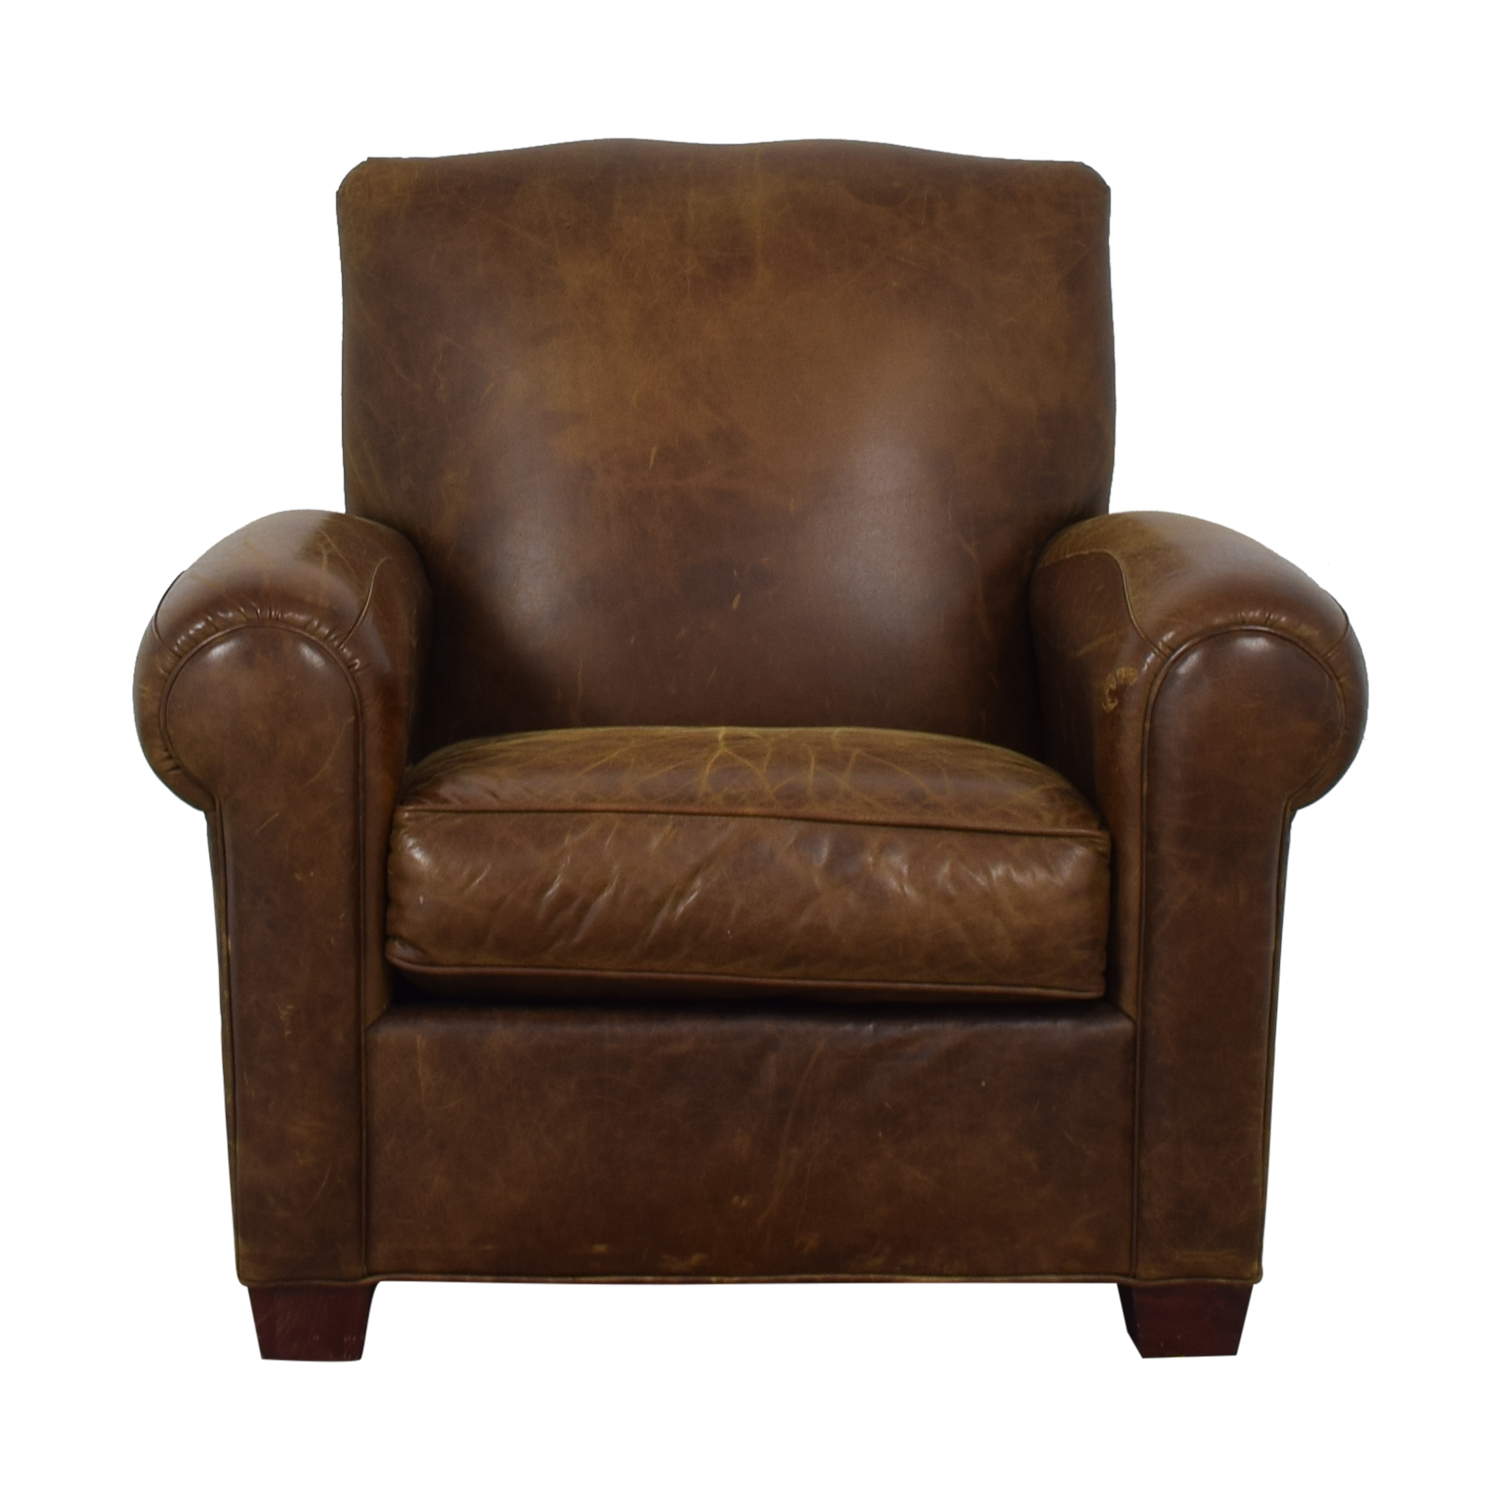 buy Zagaroli Classics Leather Club Reclining Chair Zagaroli Classics Recliners